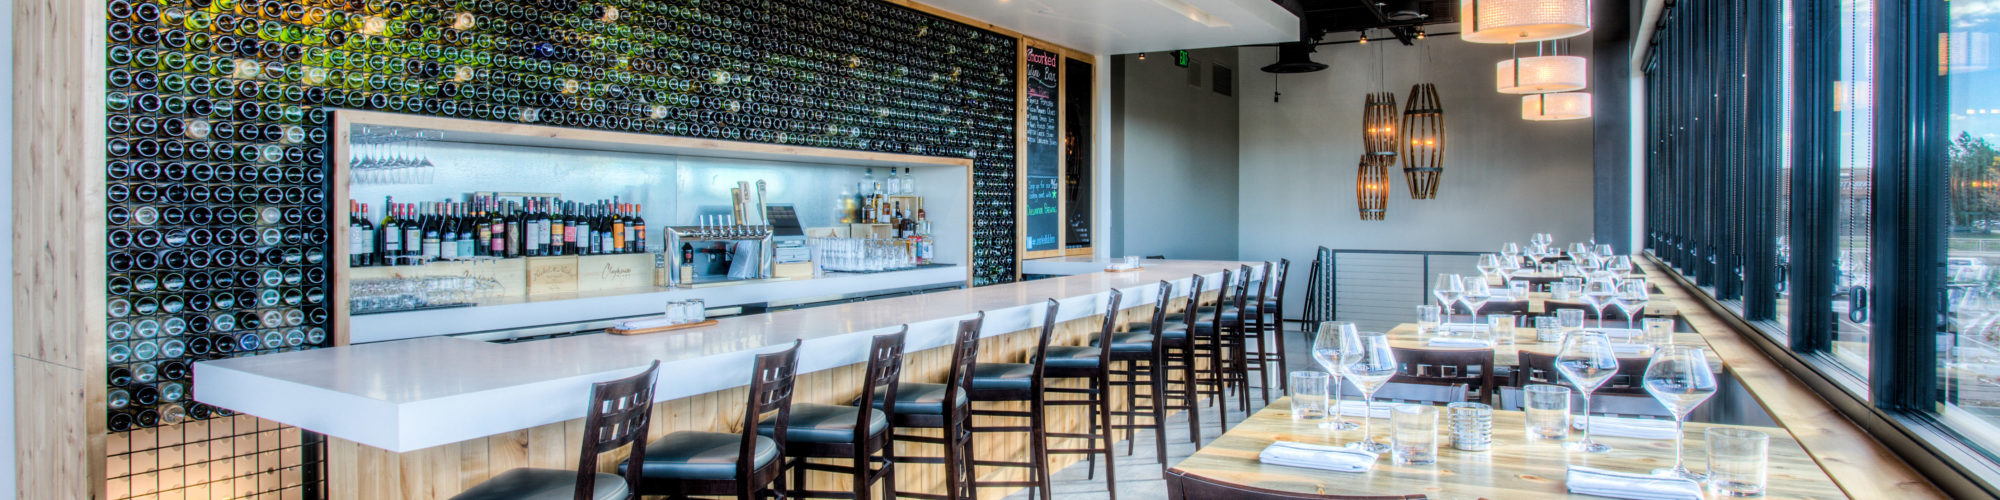 Uncorked Kitchen & Wine Bar: The Joy of Food in the Making